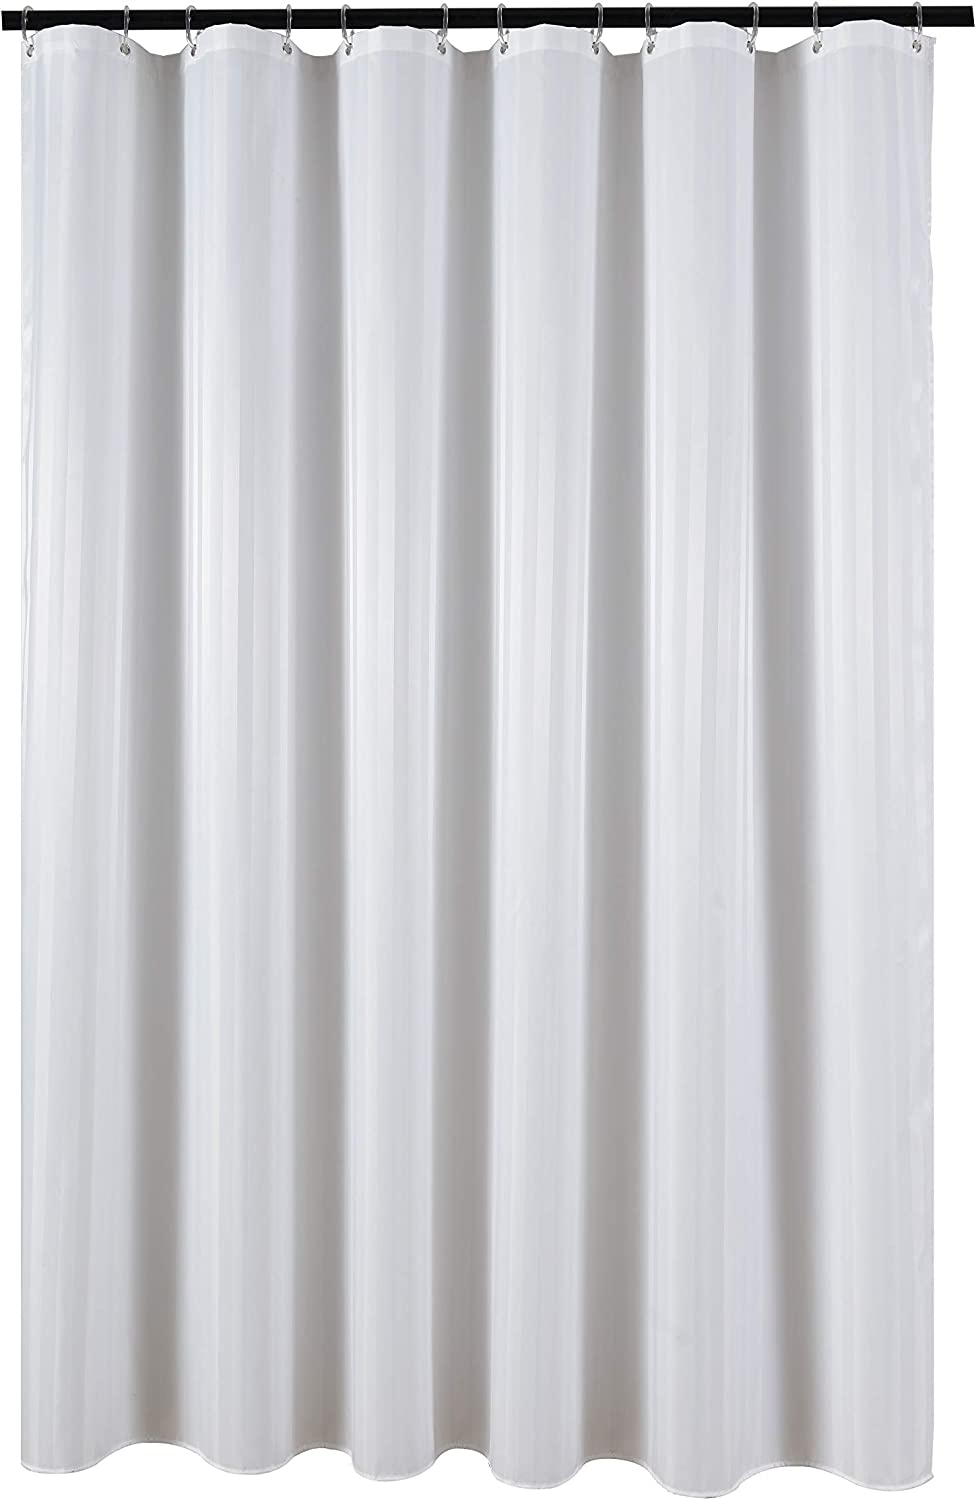 Biscaynebay Fabric Shower Curtains, Damask Stripes Water Repellent Bathroom Curtain Set, White 72 by 72 Inches, 12 Hooks Included